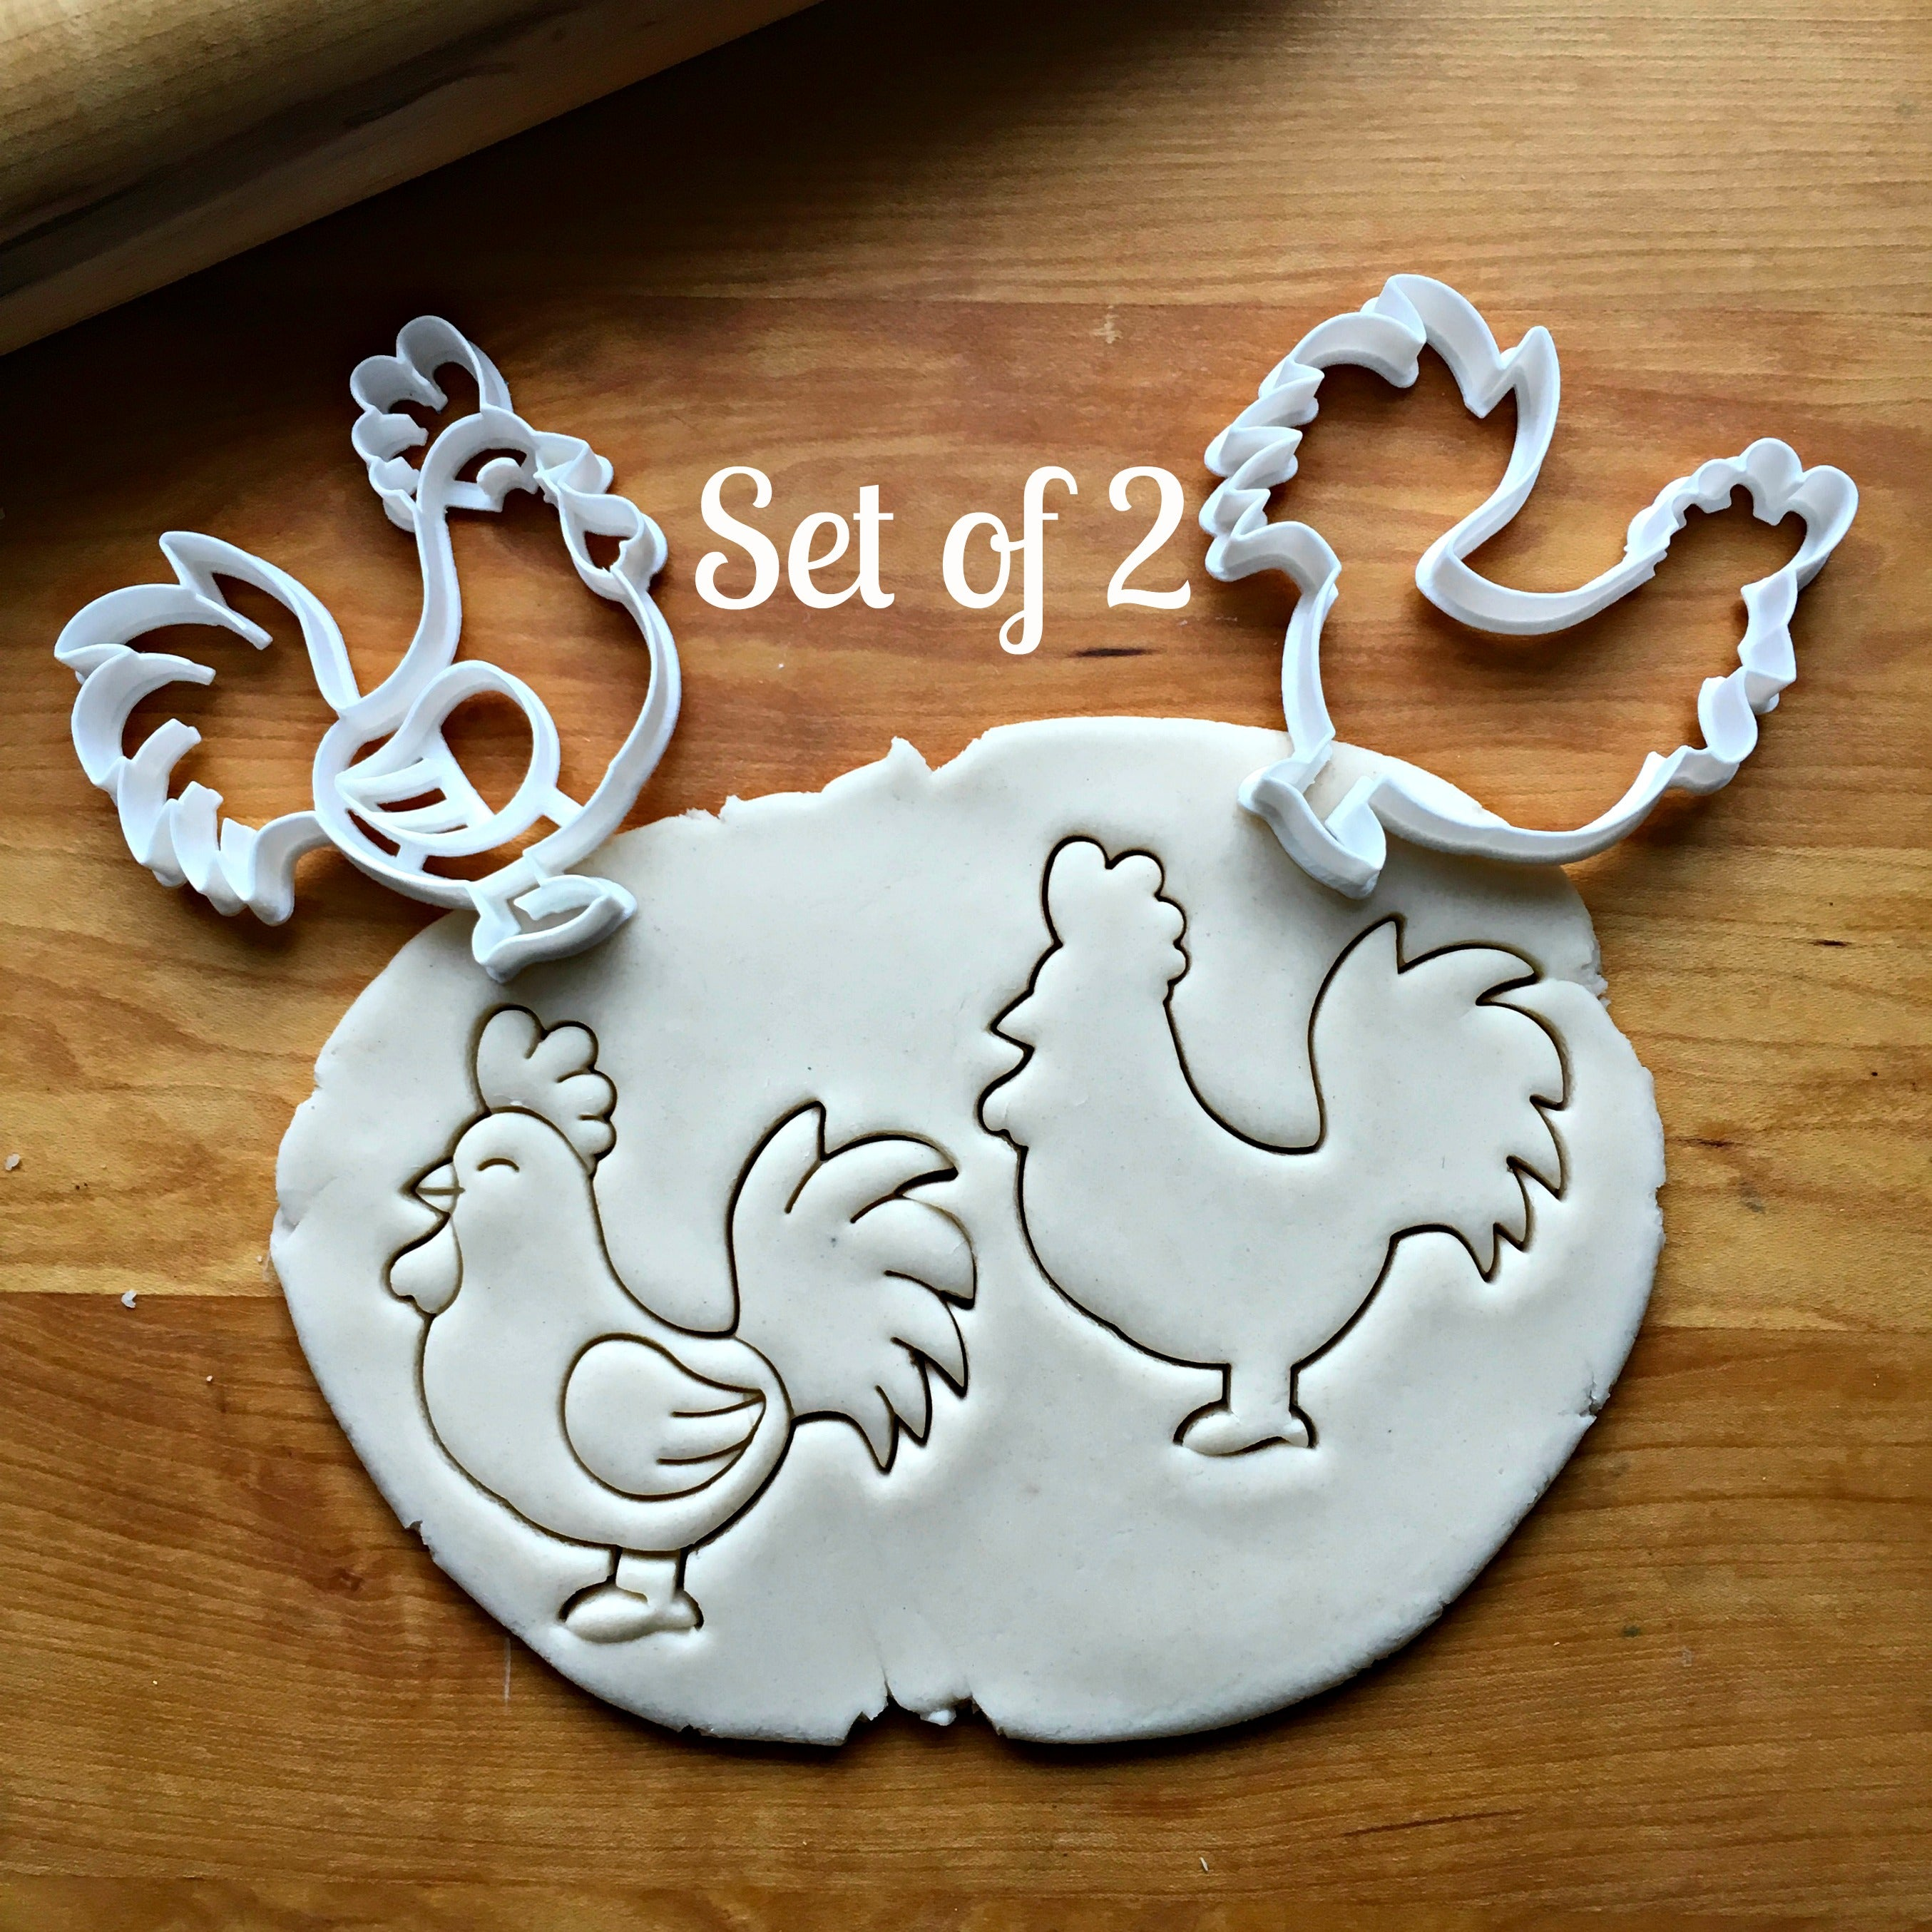 Set of 2 Rooster Cookie Cutters/Dishwasher Safe